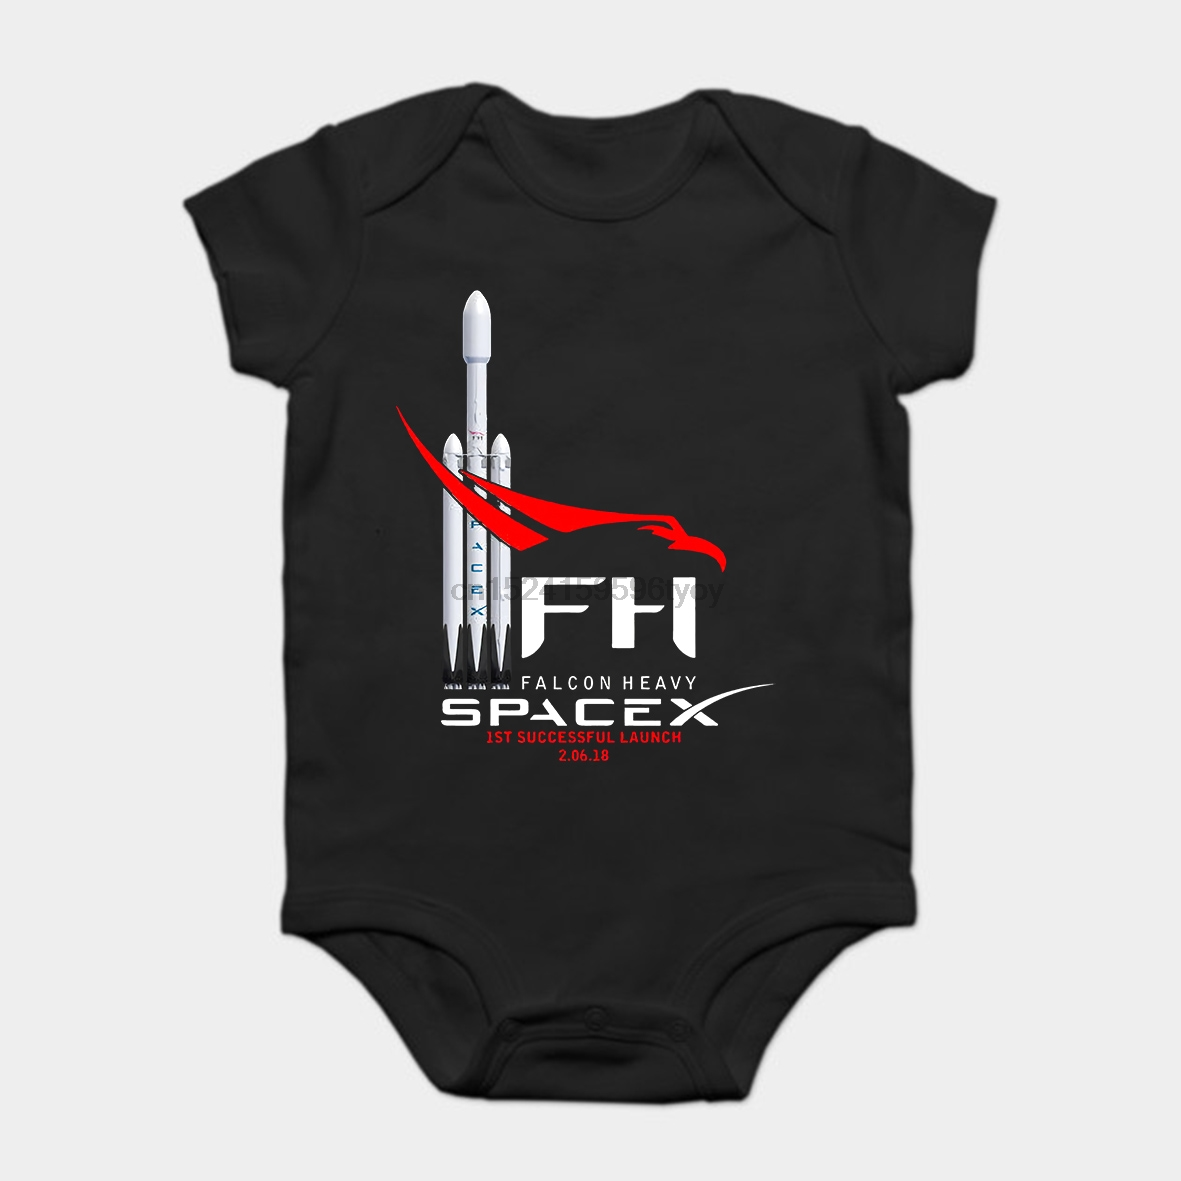 Baby Onesie Baby Bodysuits Kid T Shirt Fast Ship Spacex Rocket Space Tee Free Shipping Falcon Heavy Summer Yet Not Vulgar